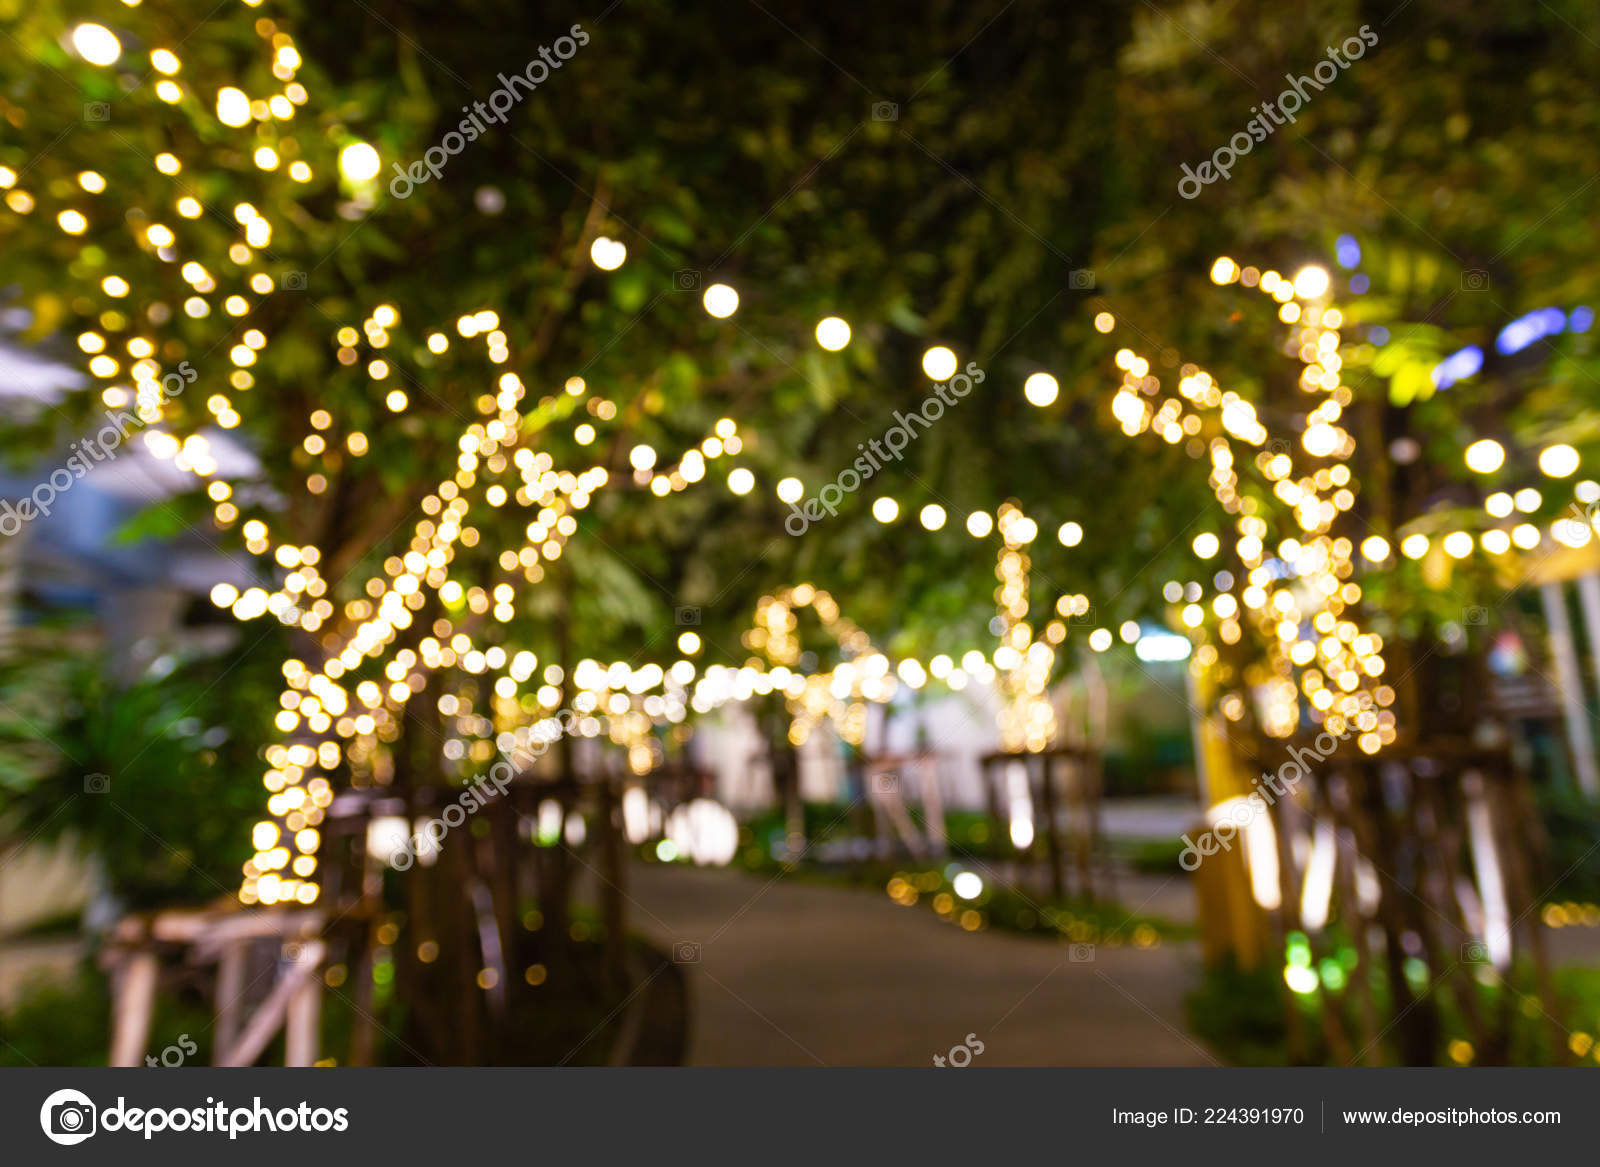 Blurred image Decorative outdoor string lights hanging on tree in the garden at night time - decorative Christmas lights - happy new year– stock image